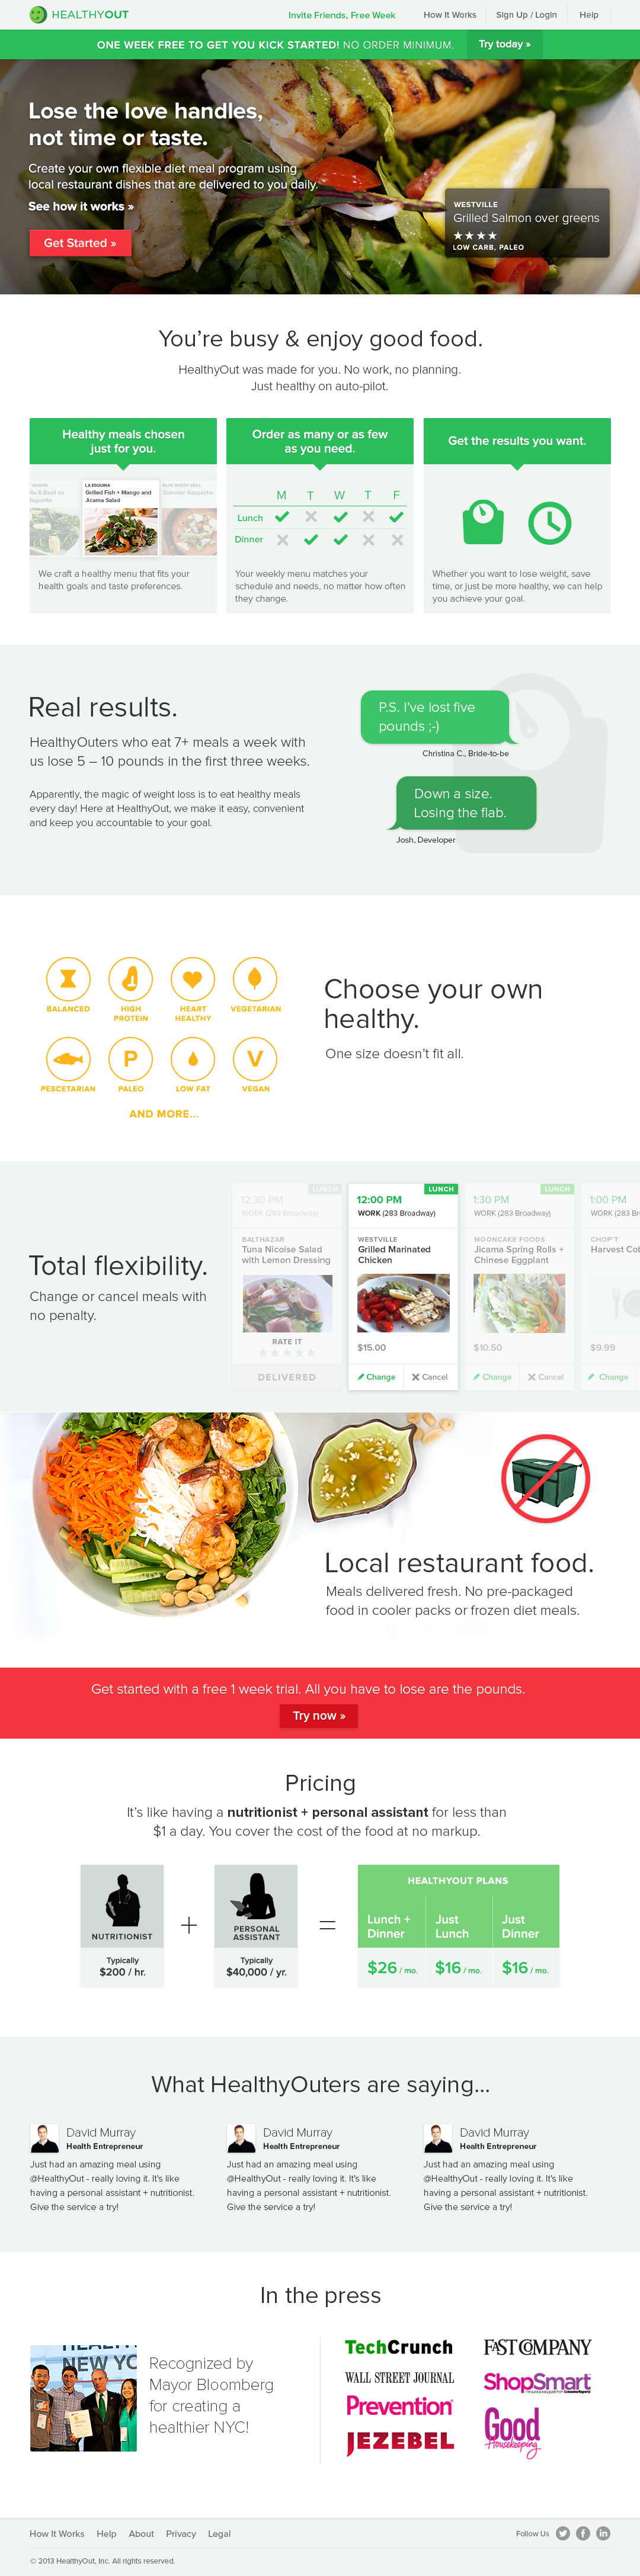 HealthyOut Homepage